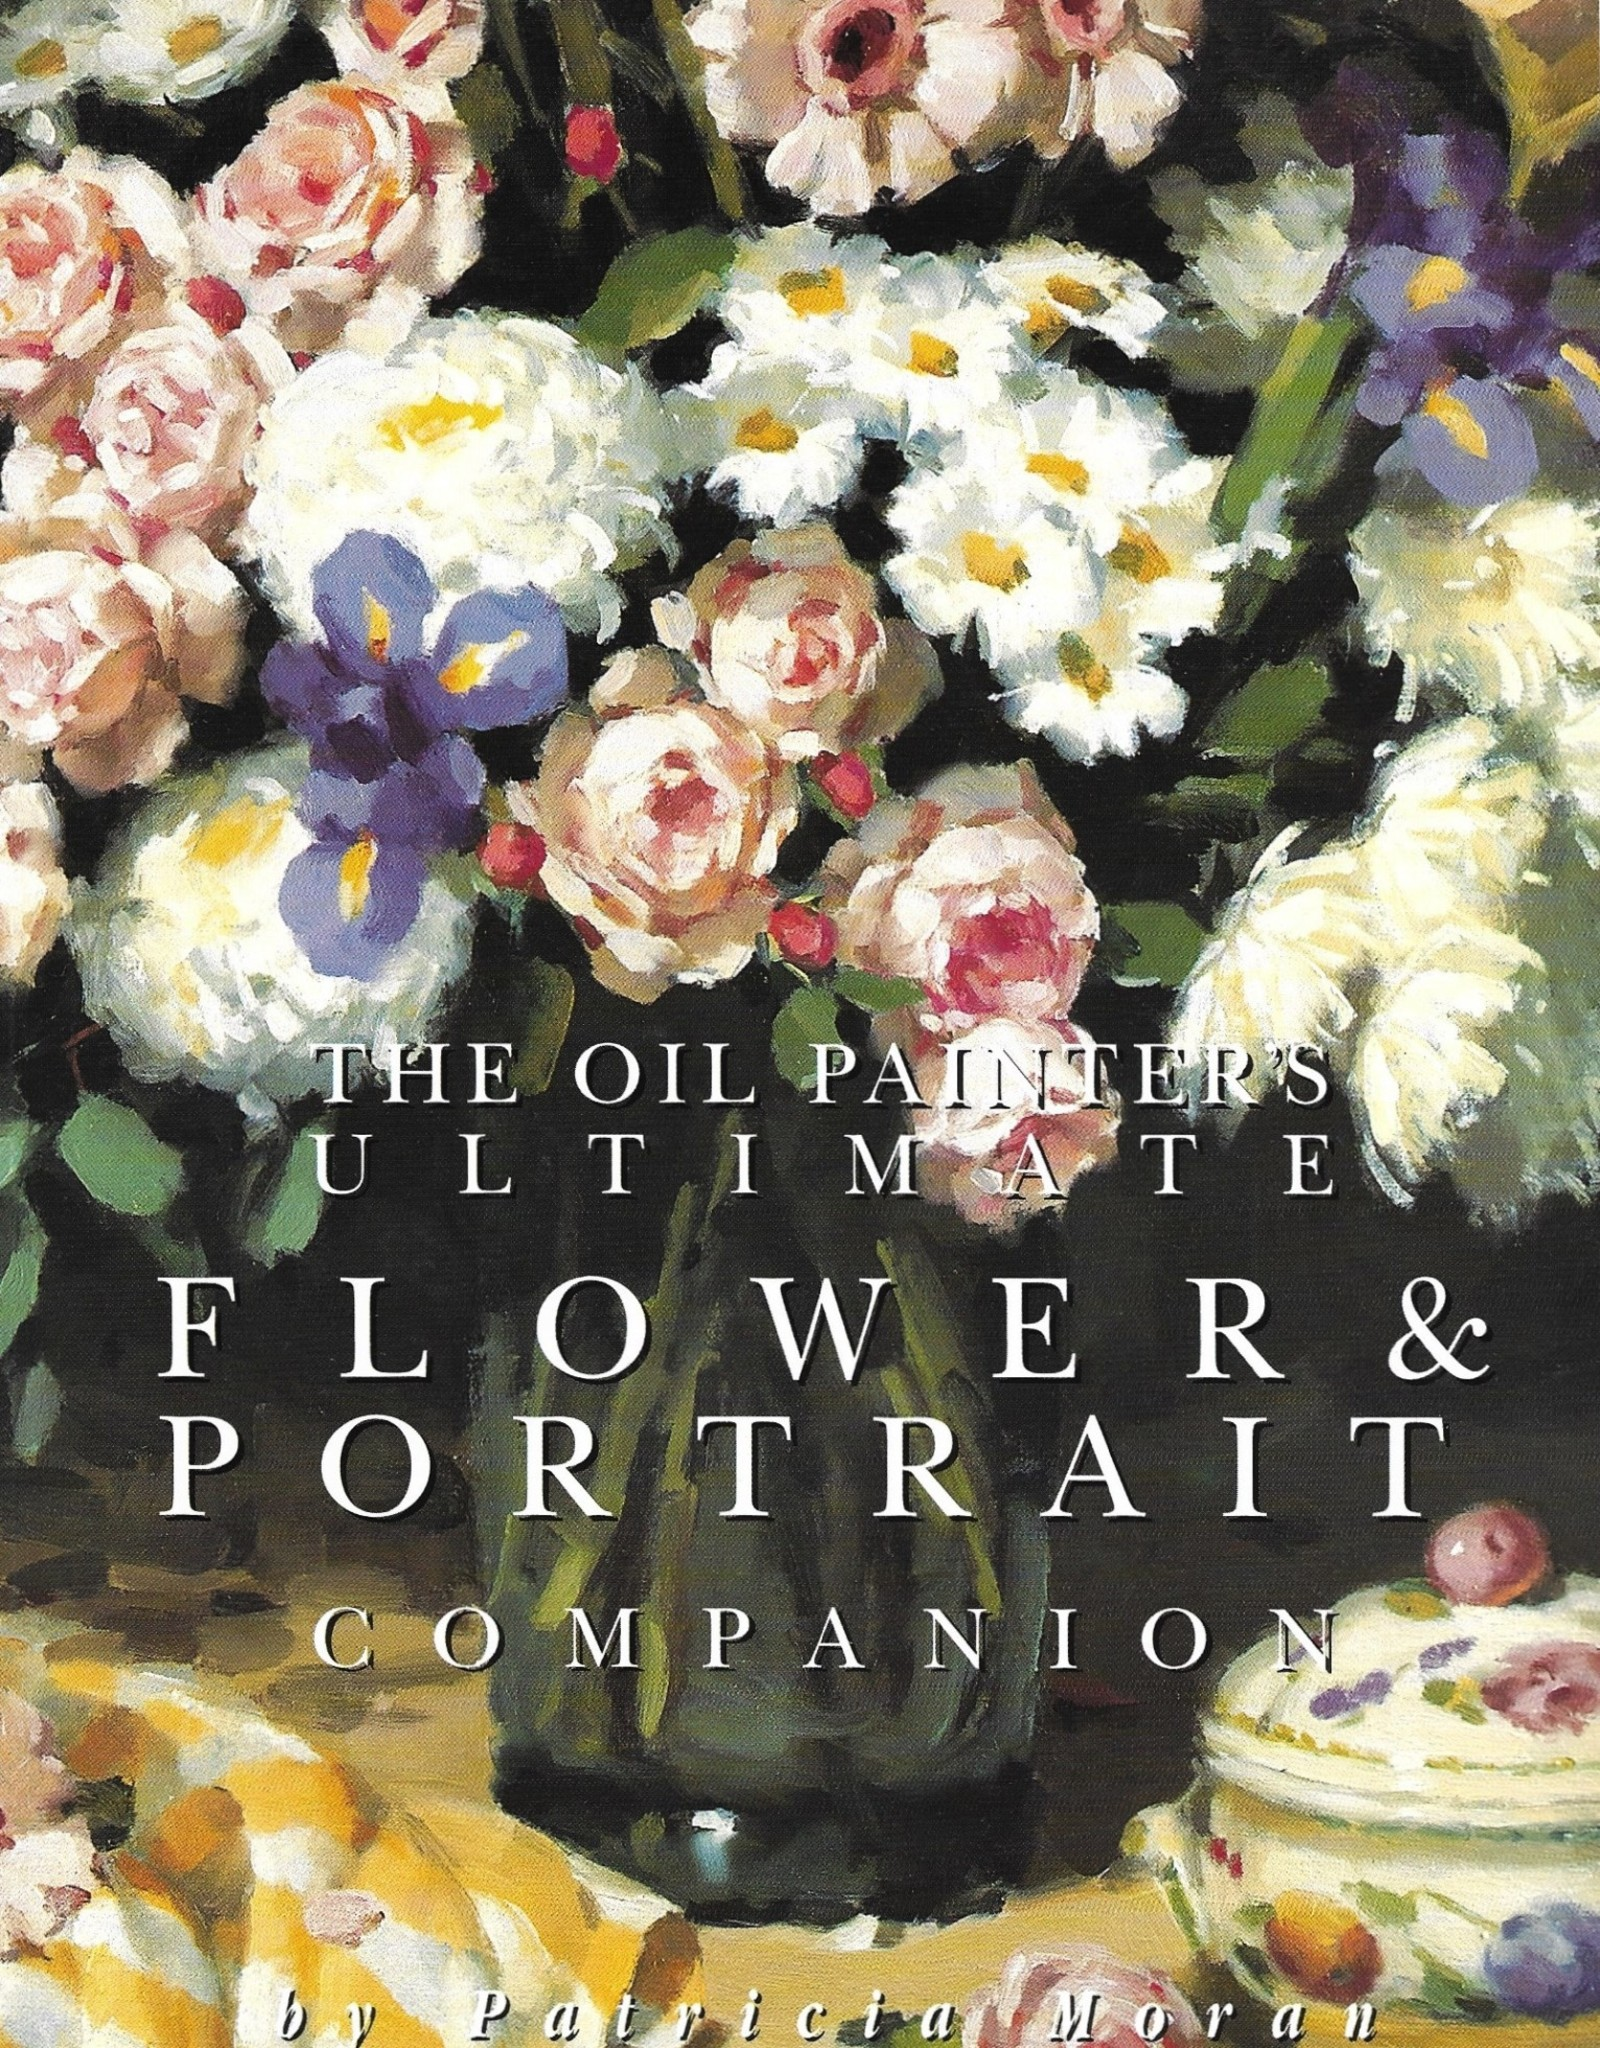 The Oil Painter's Ultimate Flower & Portrait Companion